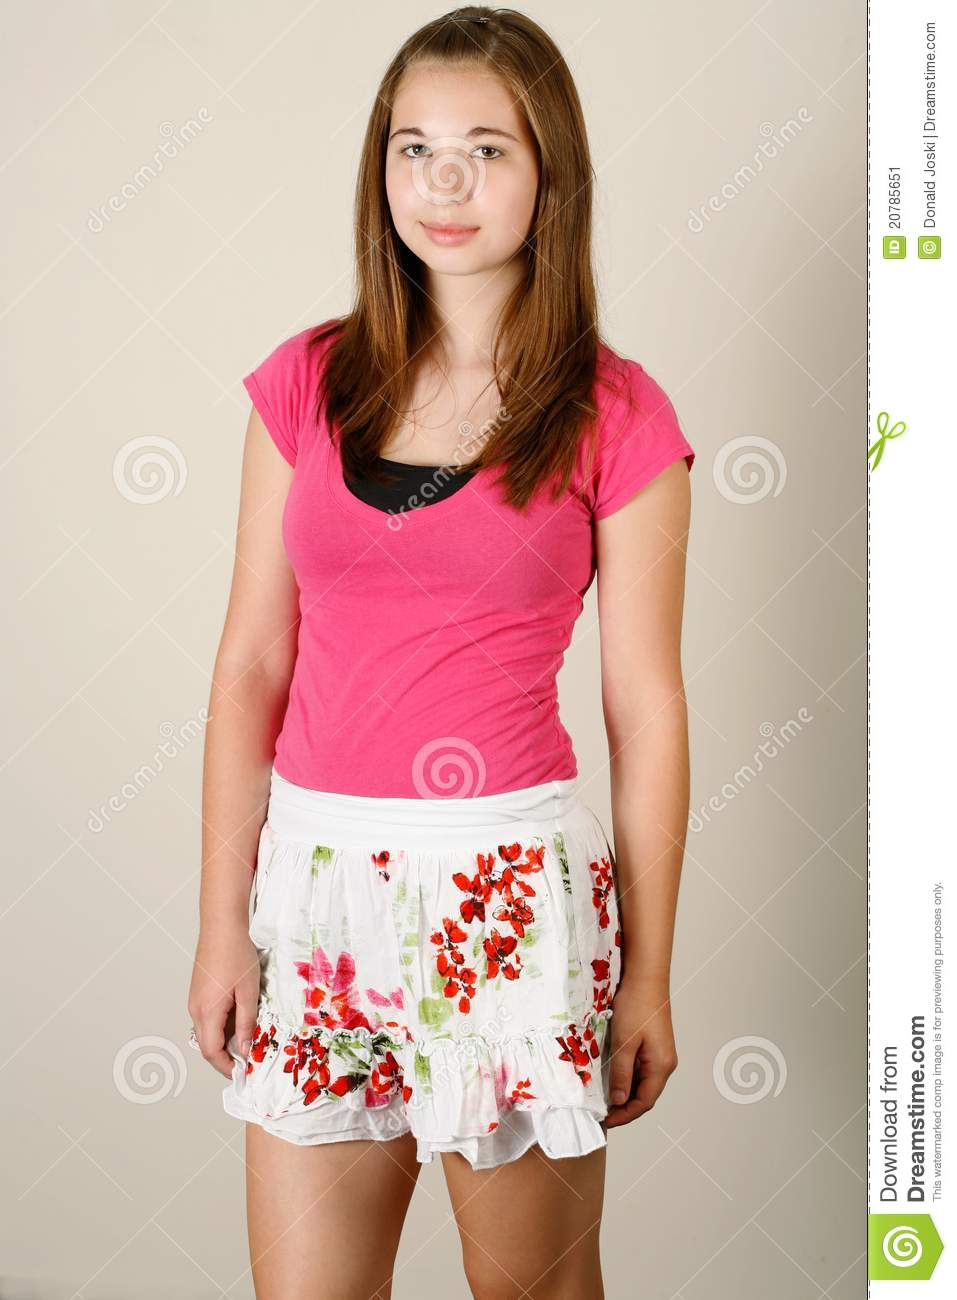 Cute teen fashion stock image image 20785651 Cute teenage girls pics